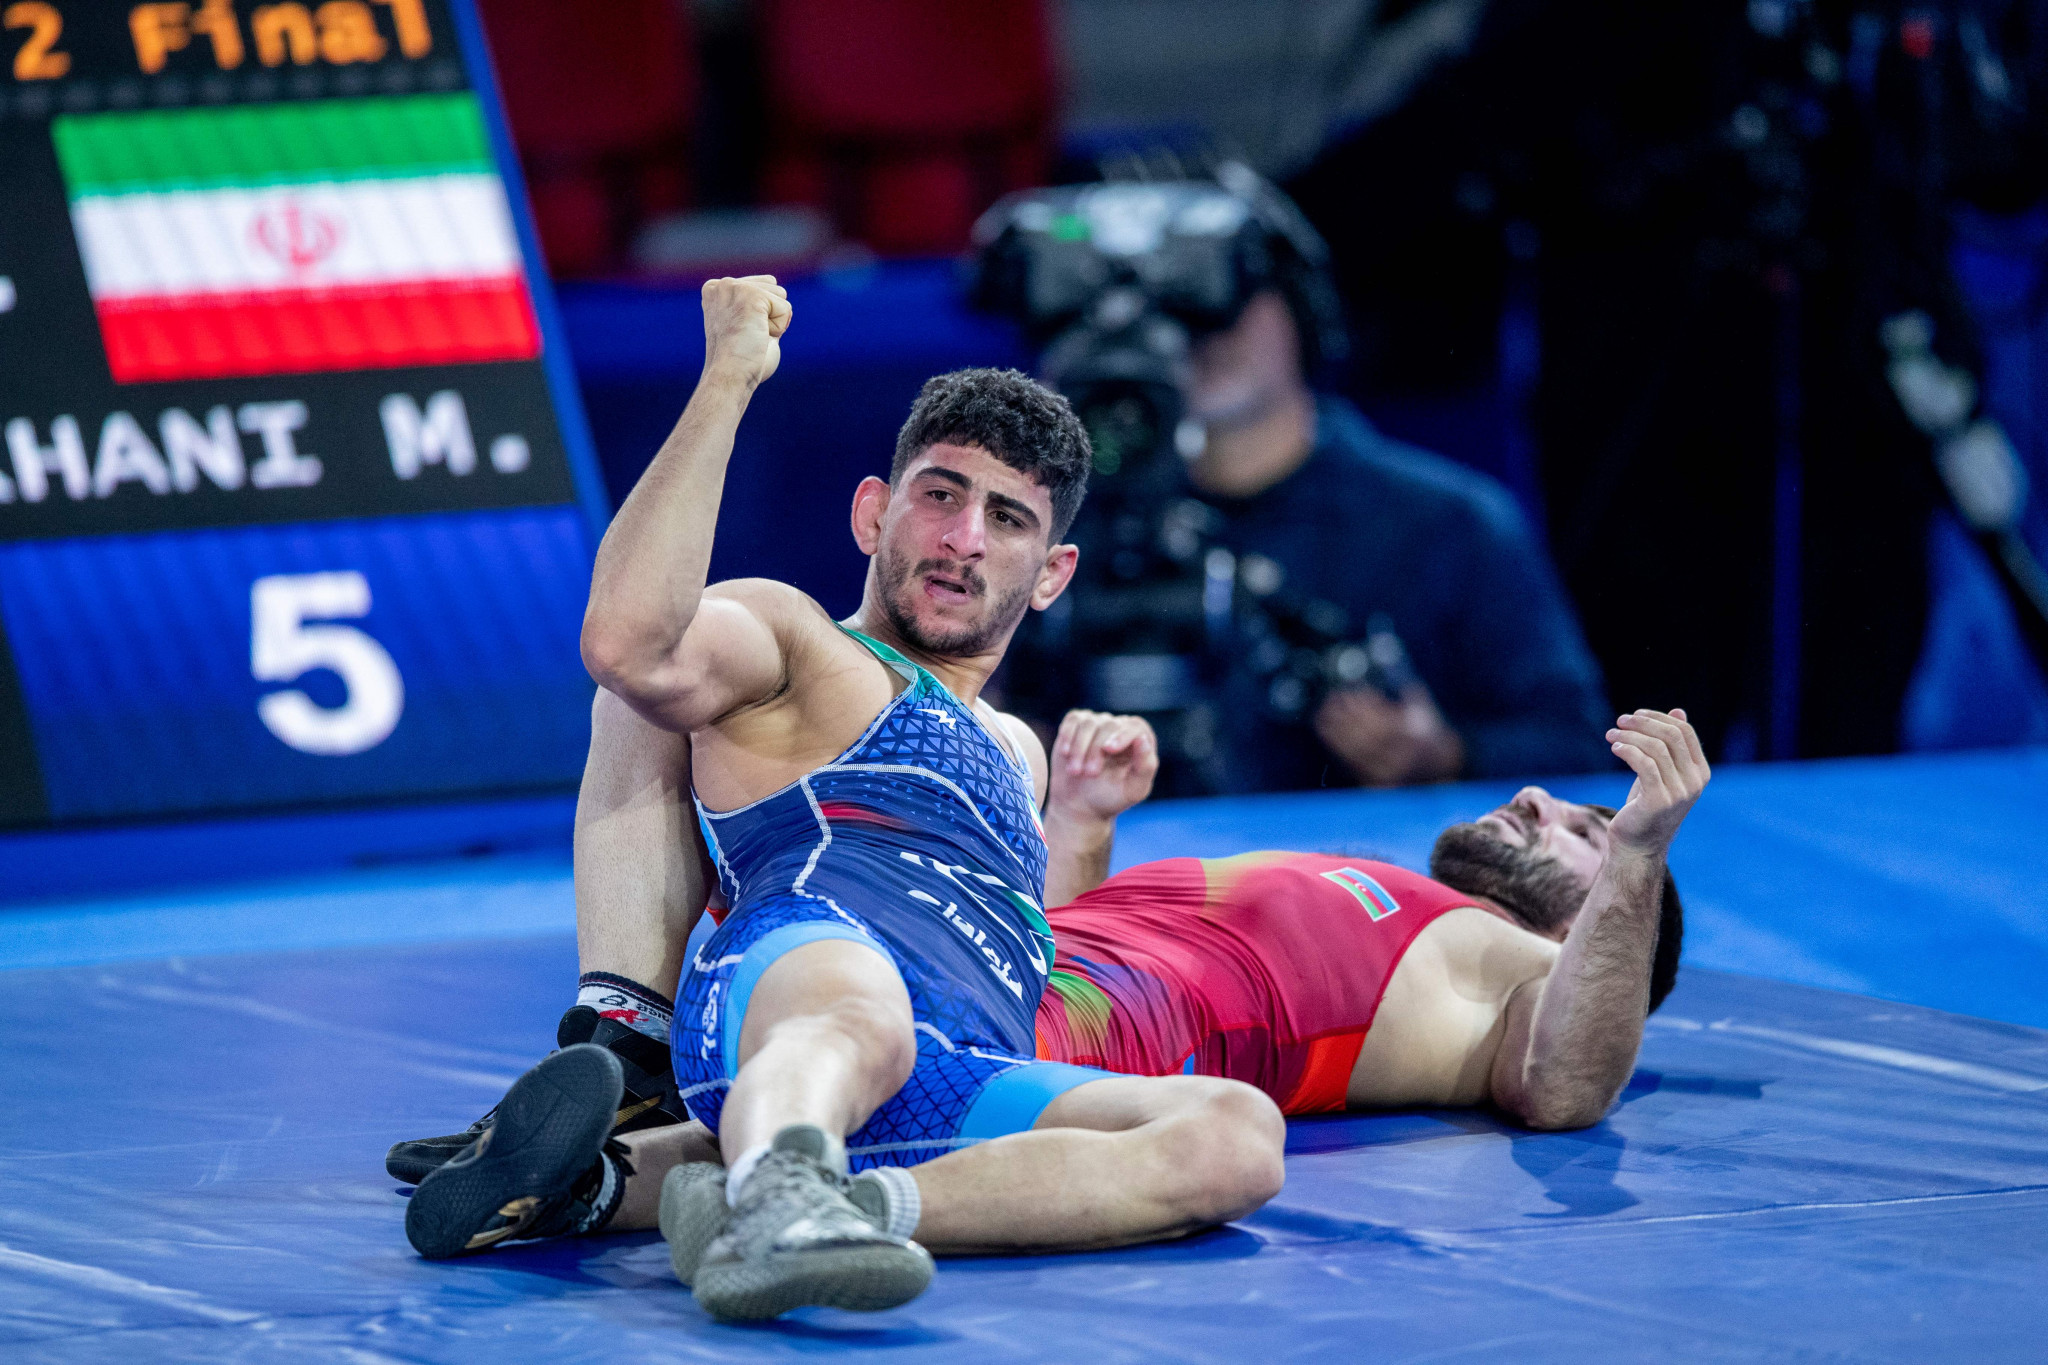 Iran tops medal table on final day of Wrestling World Championships